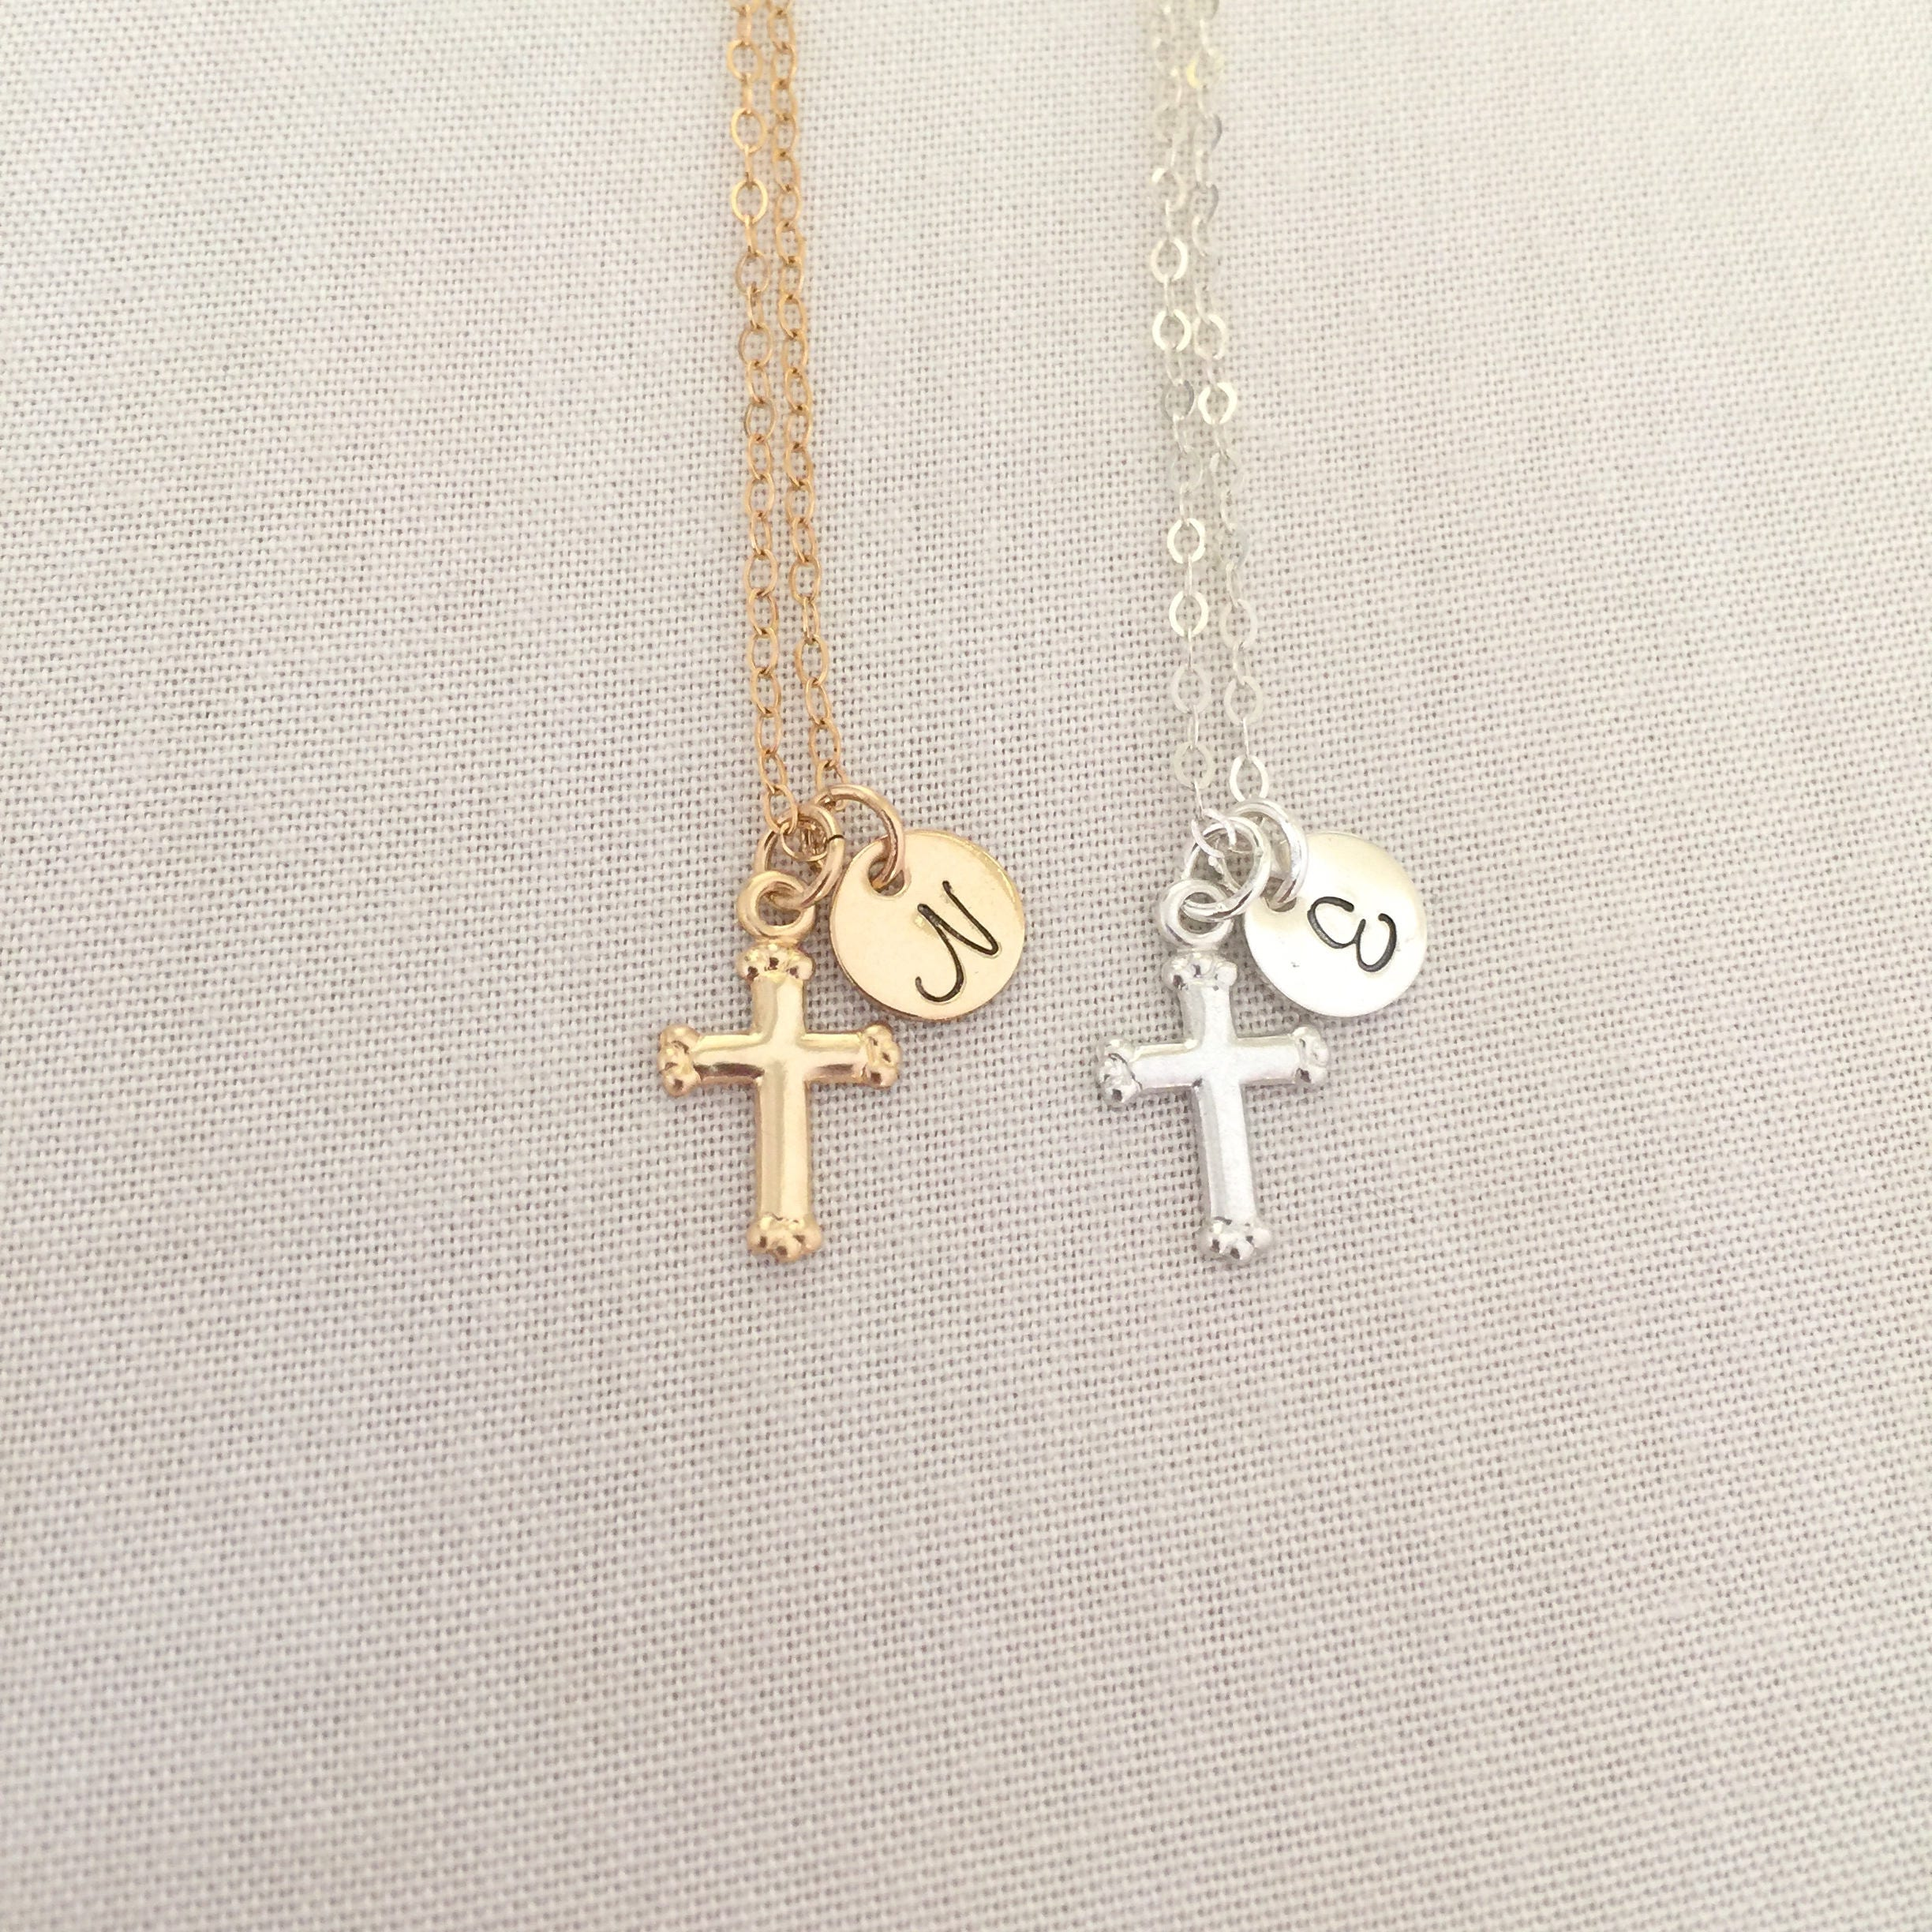 number zirconia h webstore necklaces category samuel jewellery silver sterling product baptism necklace cubic cross l style pendant